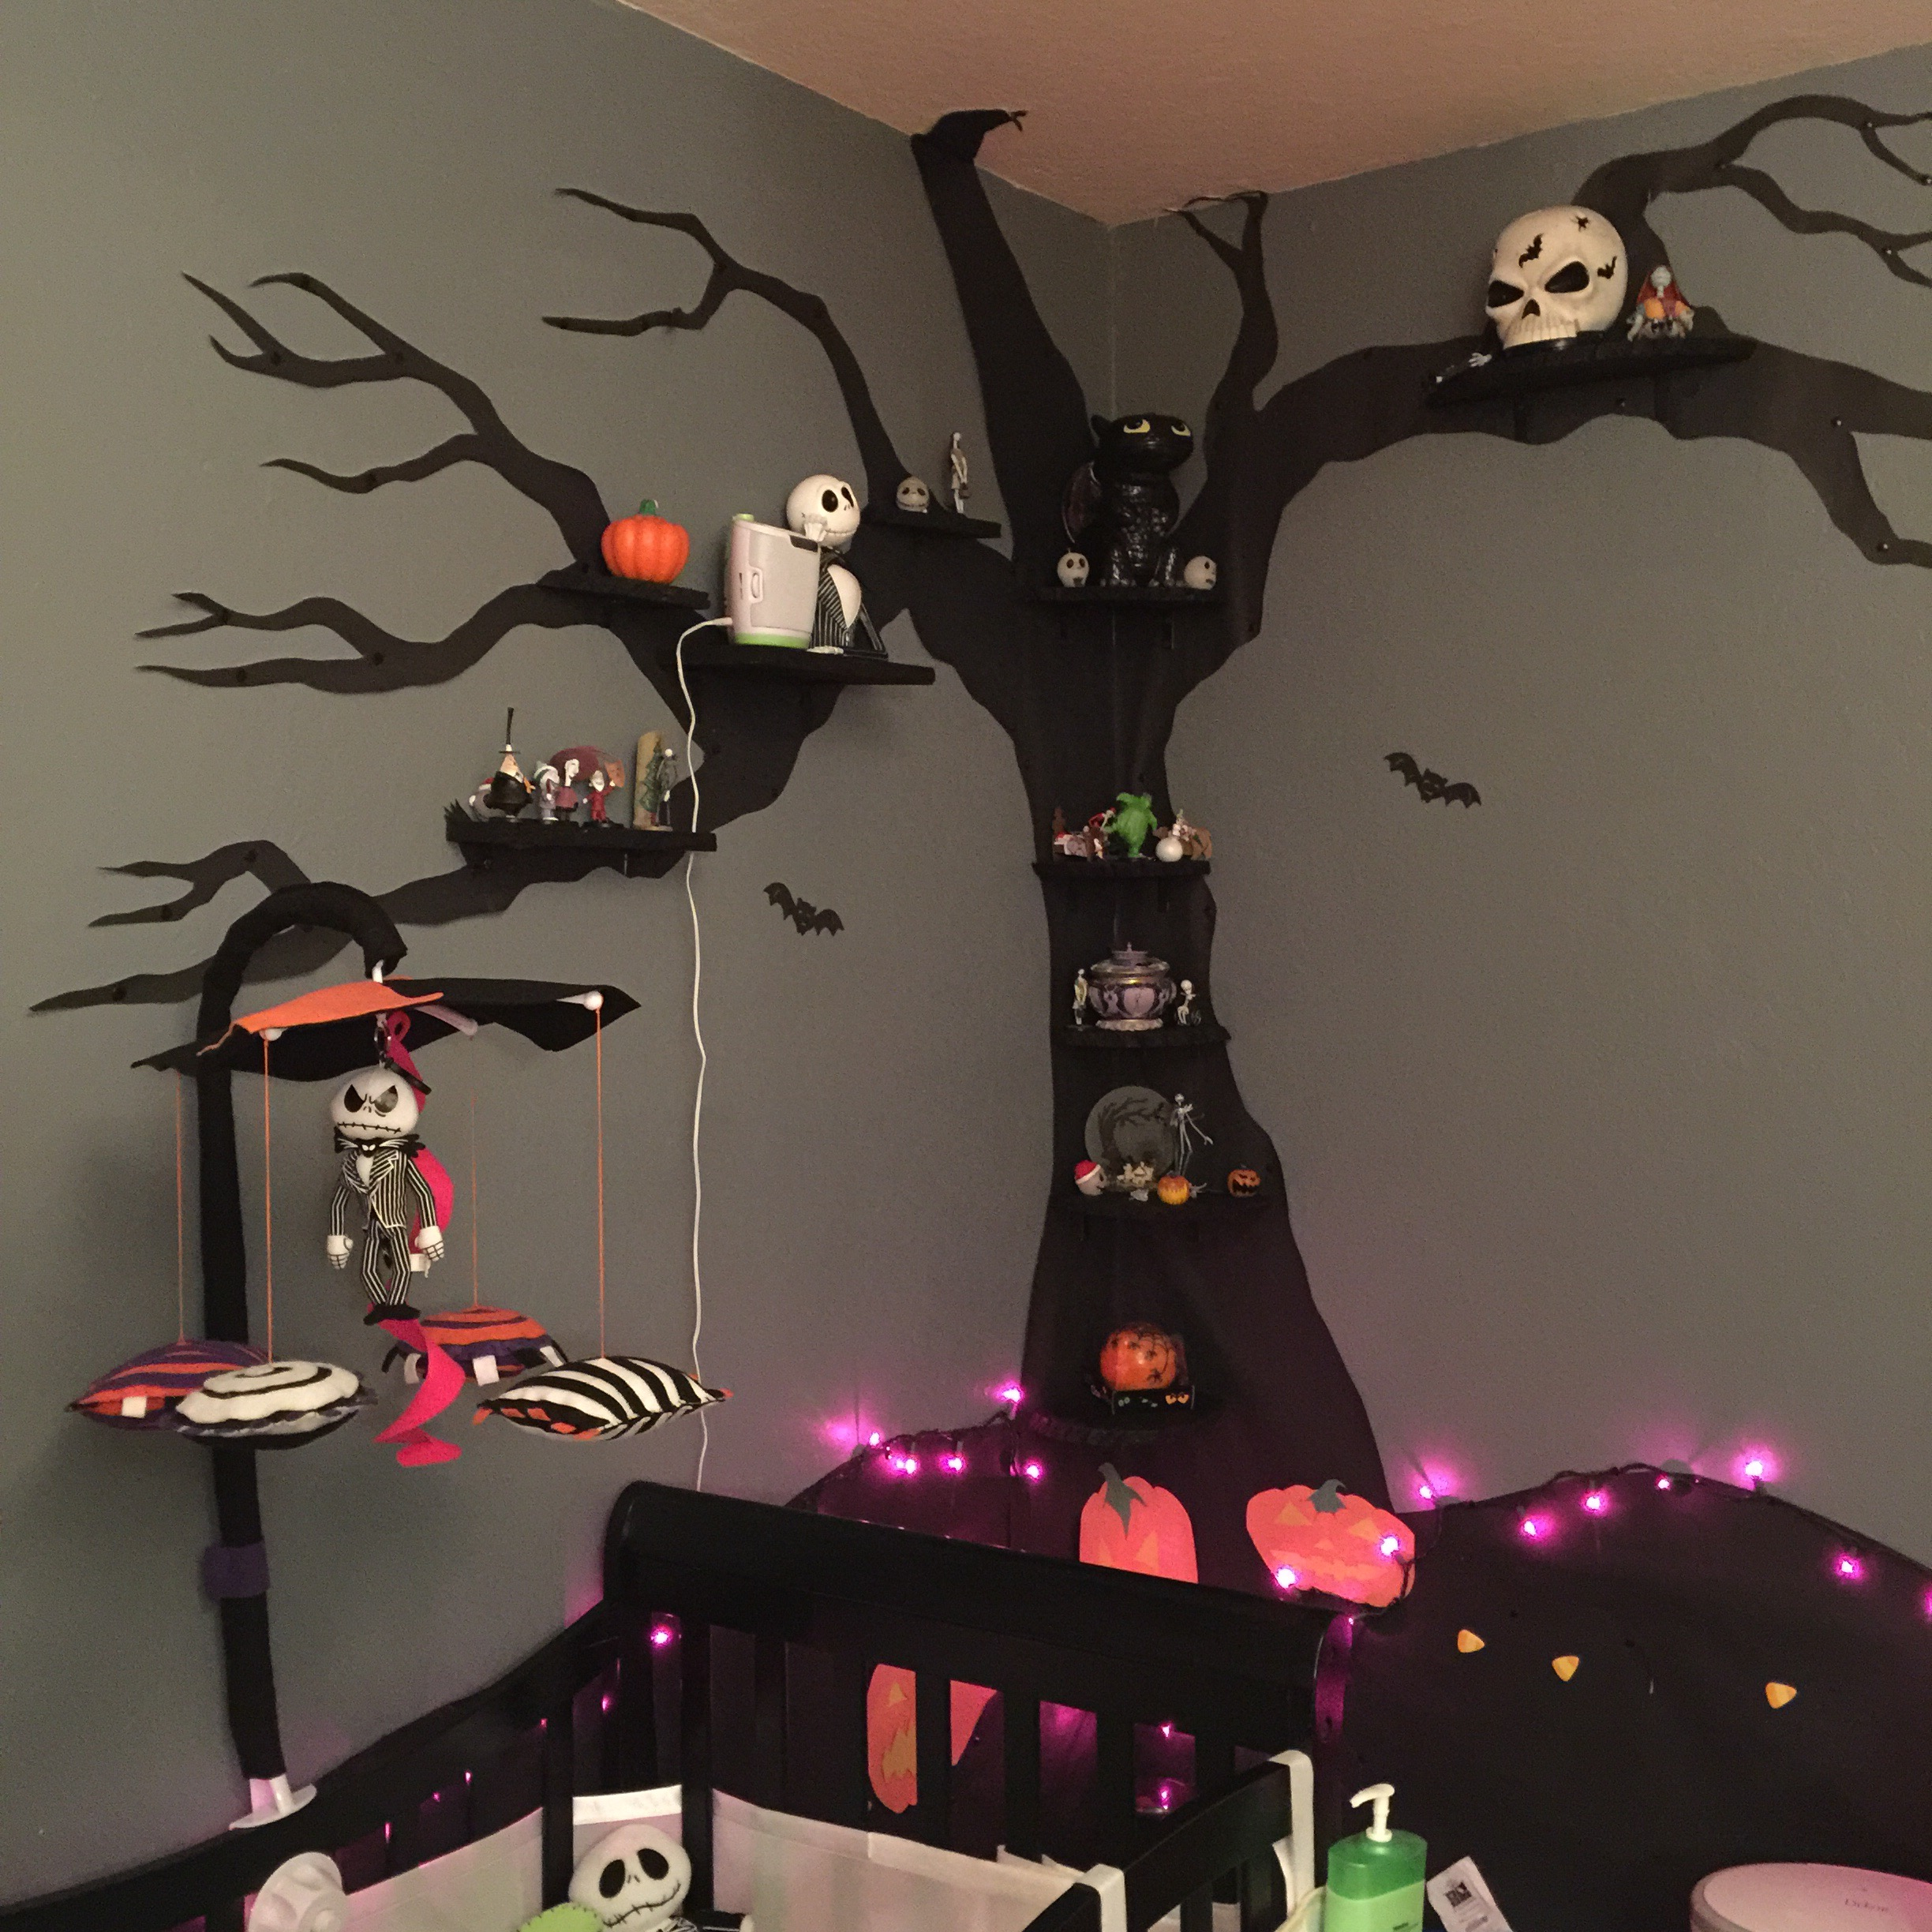 Nightmare before christmas nursery on a budget the brain squirrel nightmare before christmas nursery on a budget the brain squirrel monologues solutioingenieria Gallery